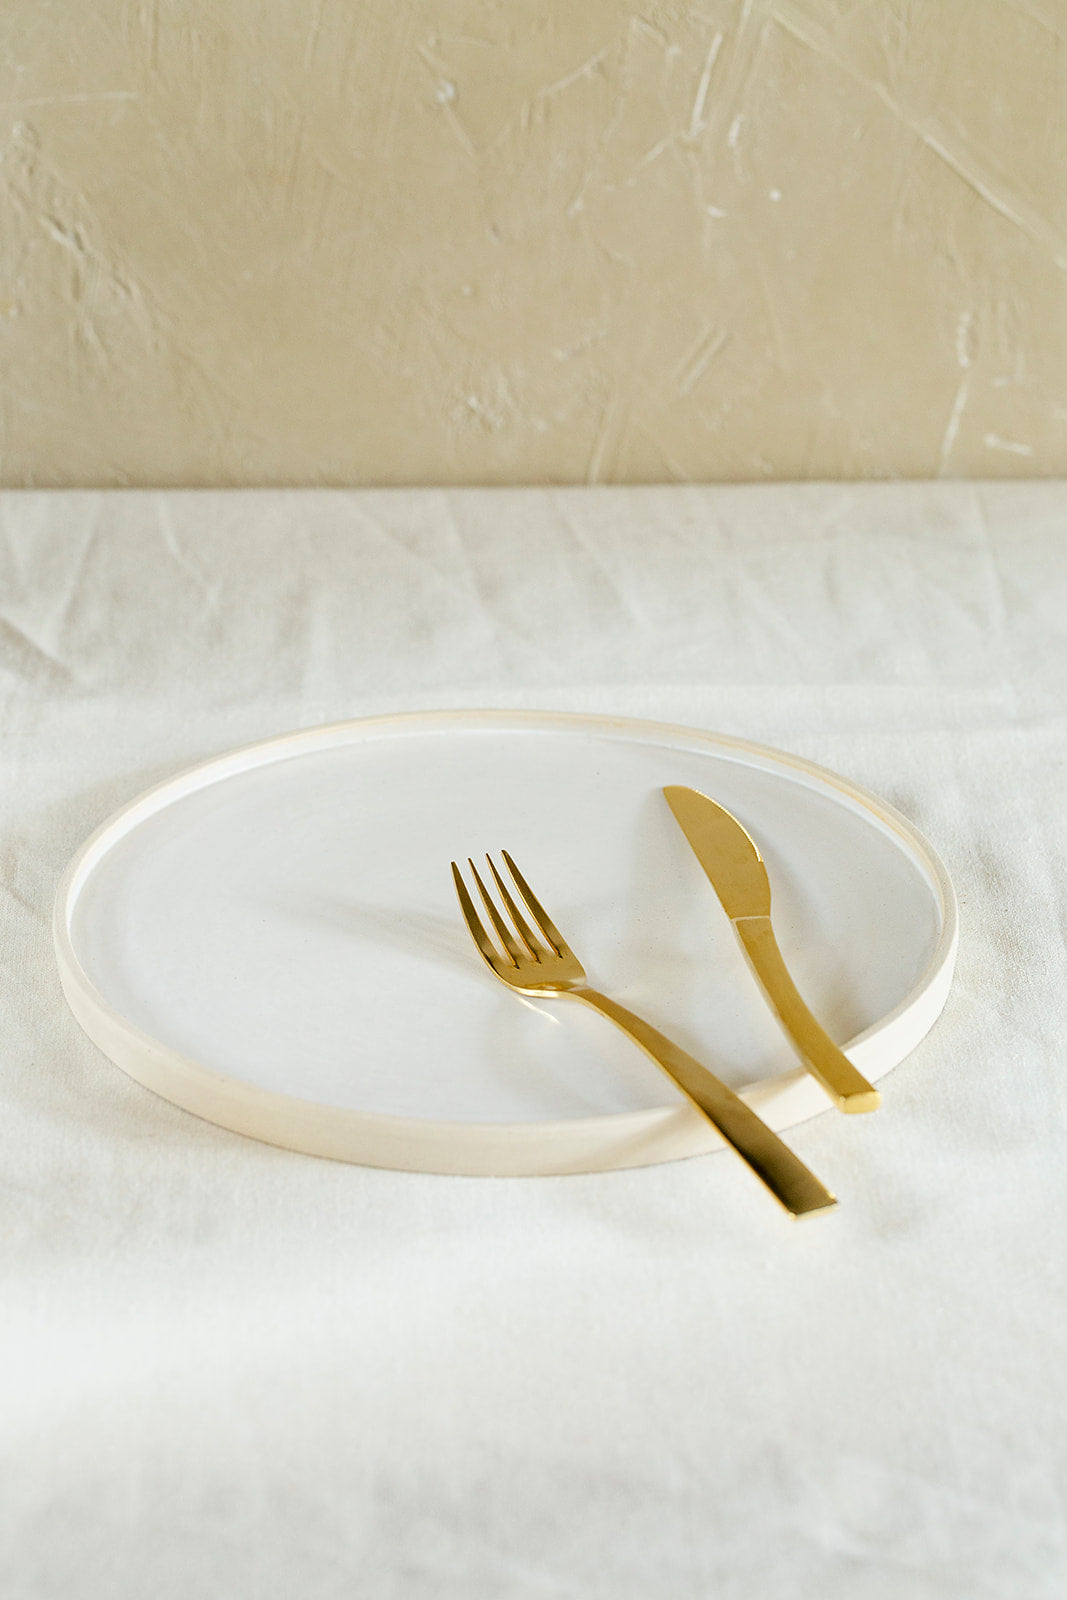 White first course plate